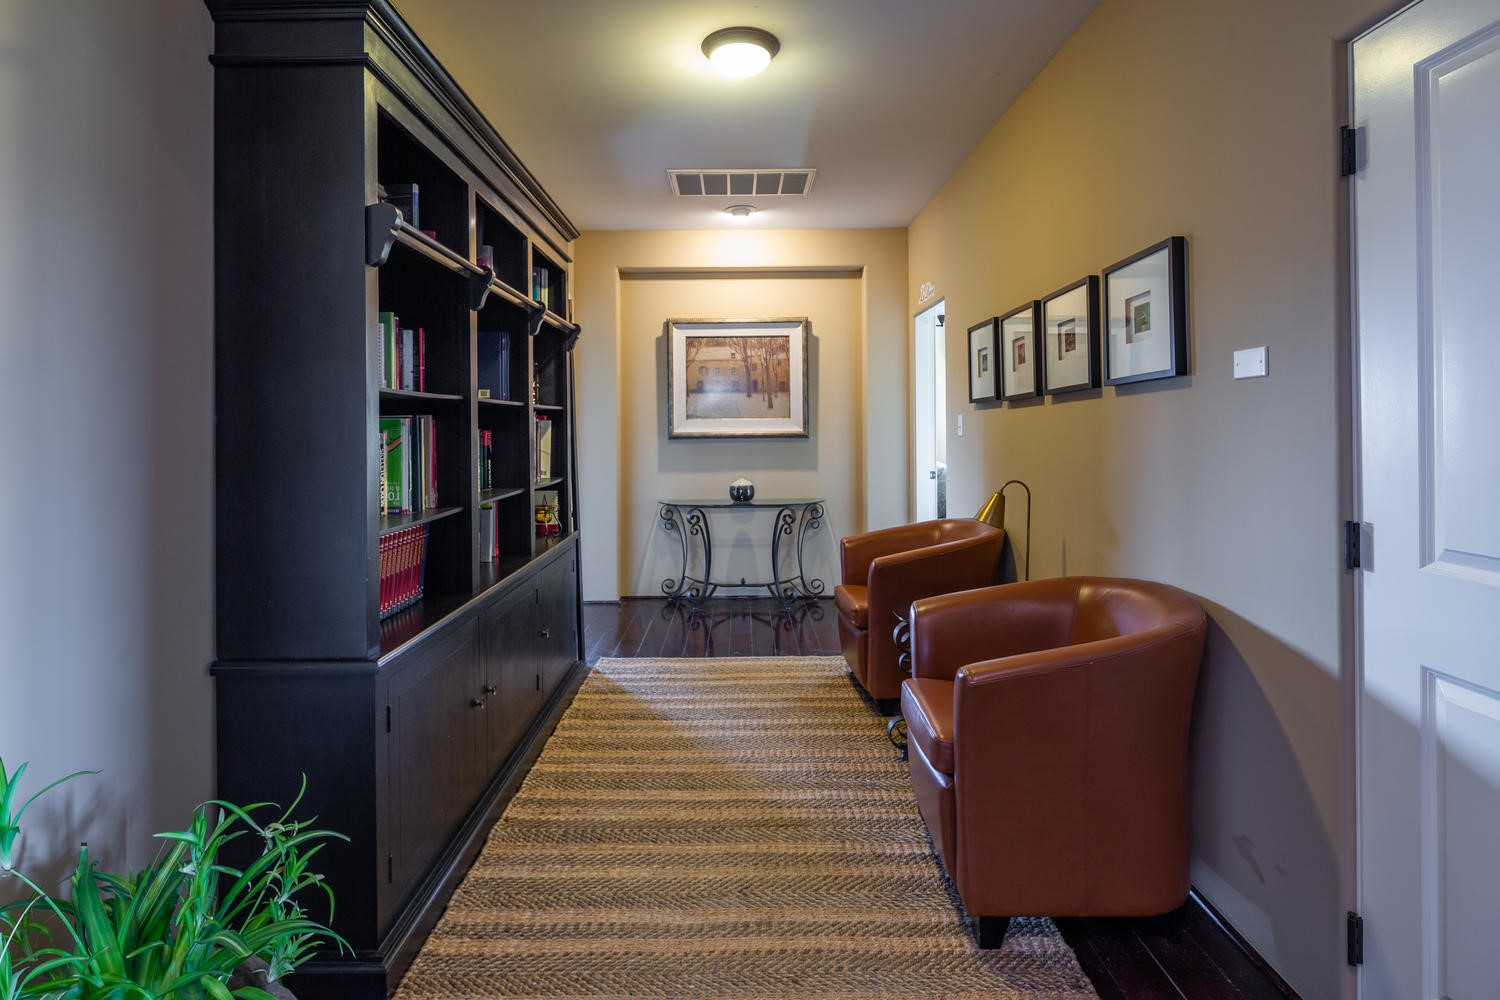 About Us - Upstairs Hallway - 1500x1000